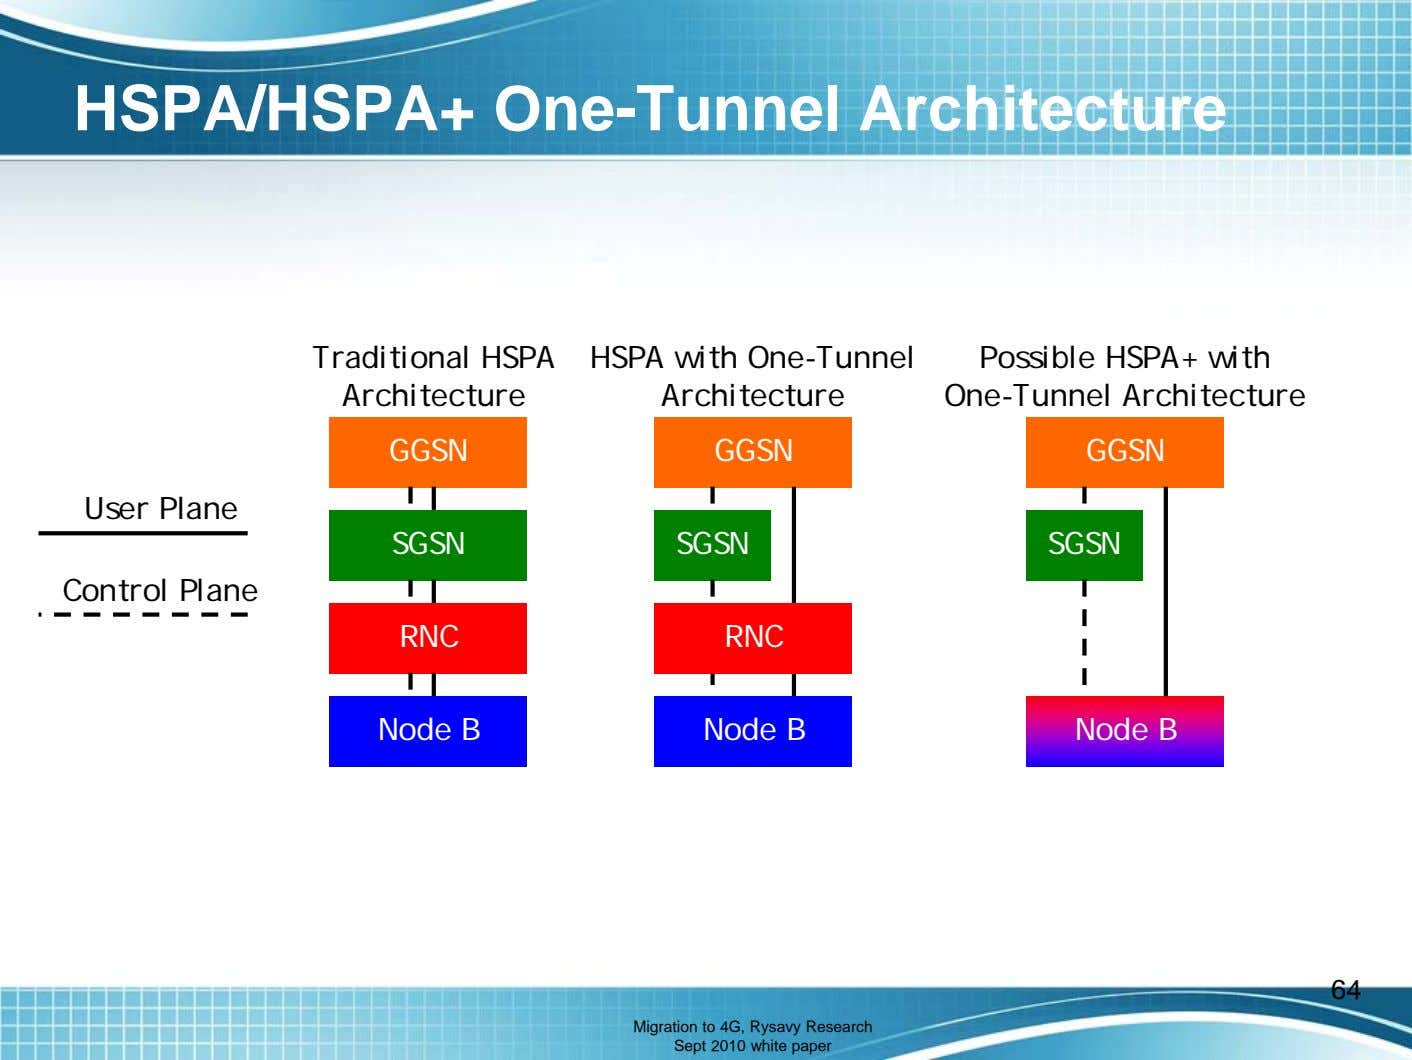 HSPA/HSPA+ One-Tunnel Architecture Traditional HSPA Architecture HSPA with One-Tunnel Architecture Possible HSPA+